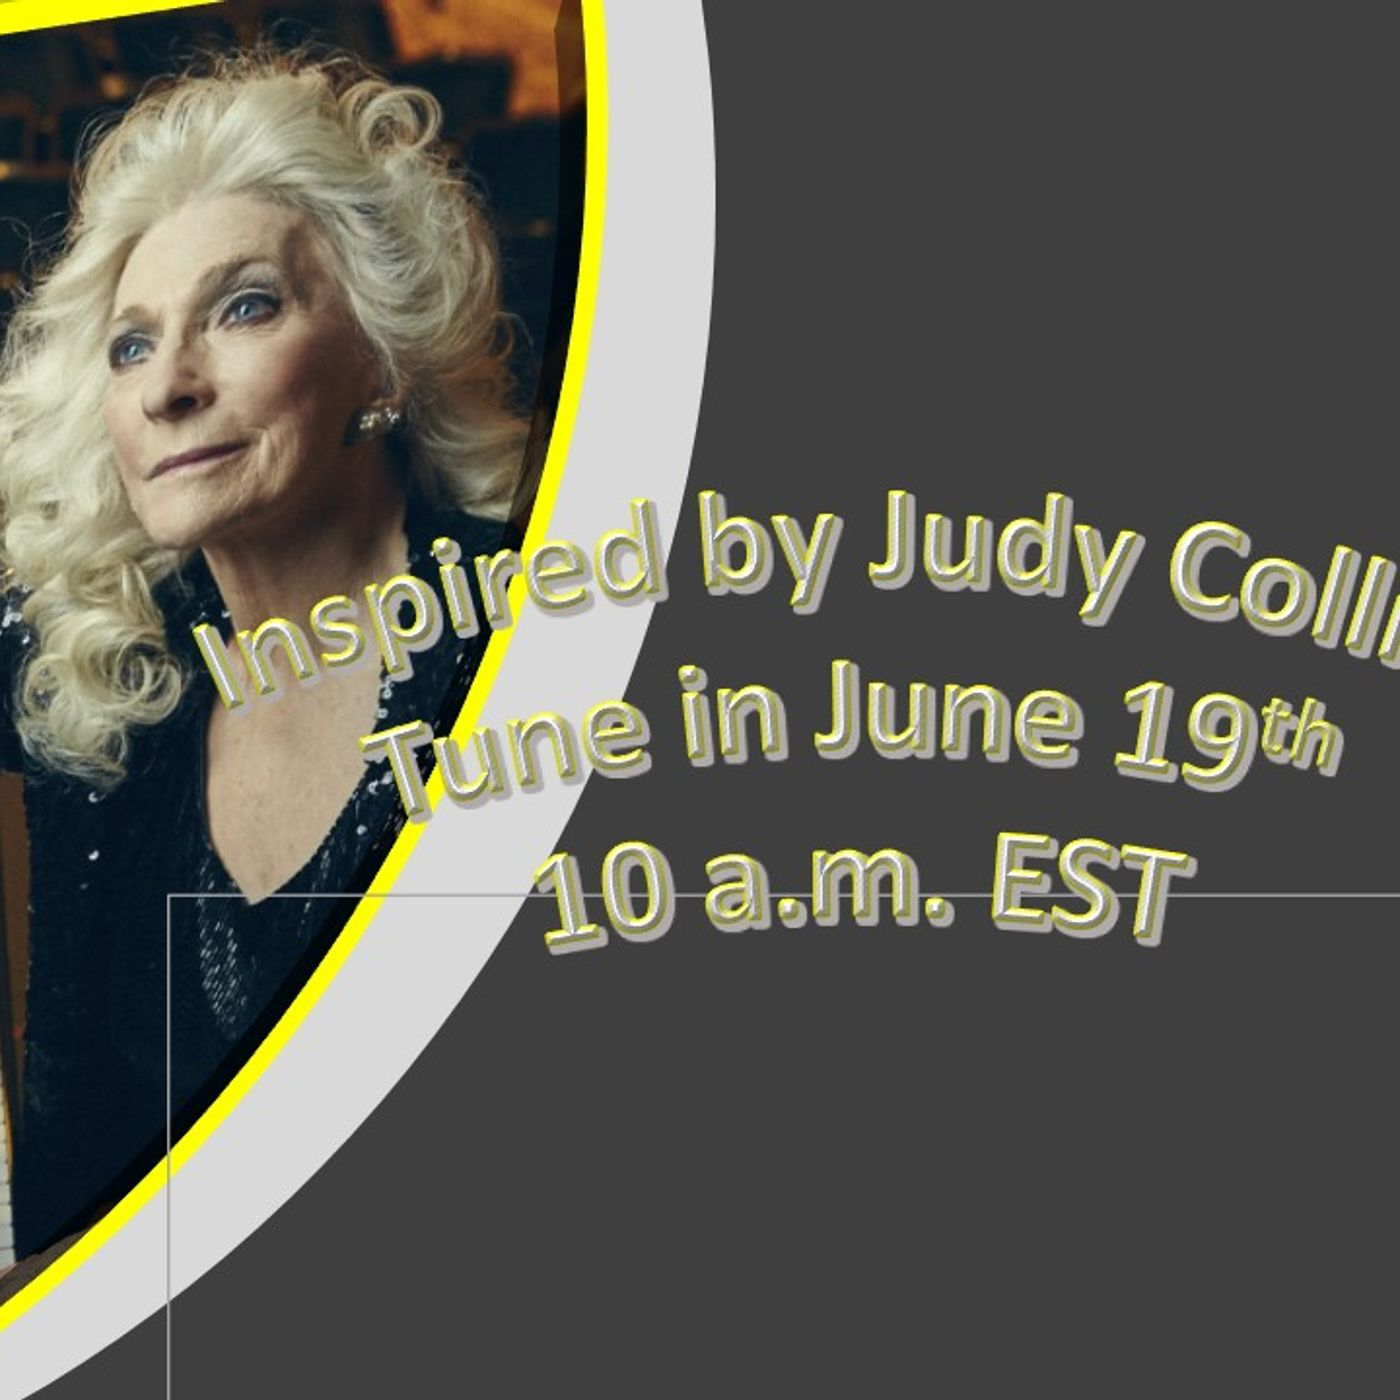 judy-collins-_five-decades-of-music-6_19_19